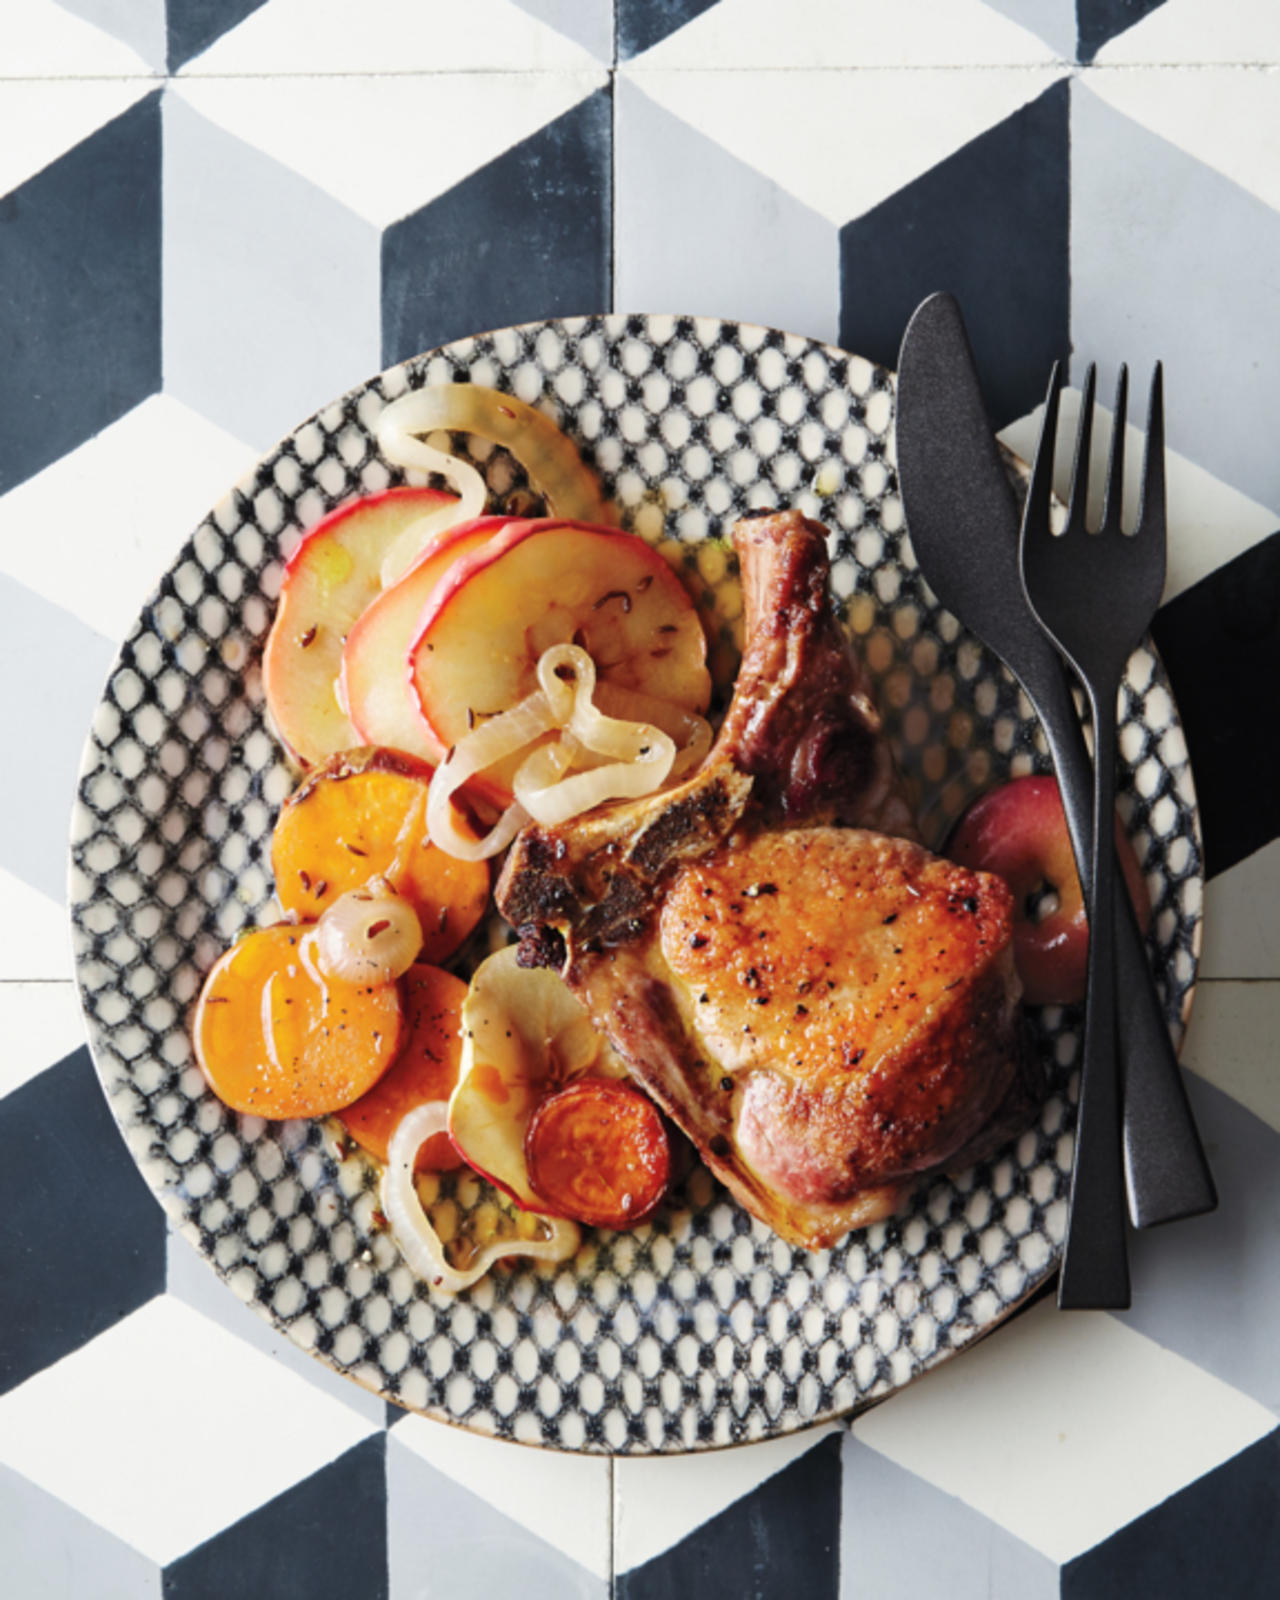 Add Fall Flavor to This Week's Dinners By Making Our Favorite Savory Apple Recipes